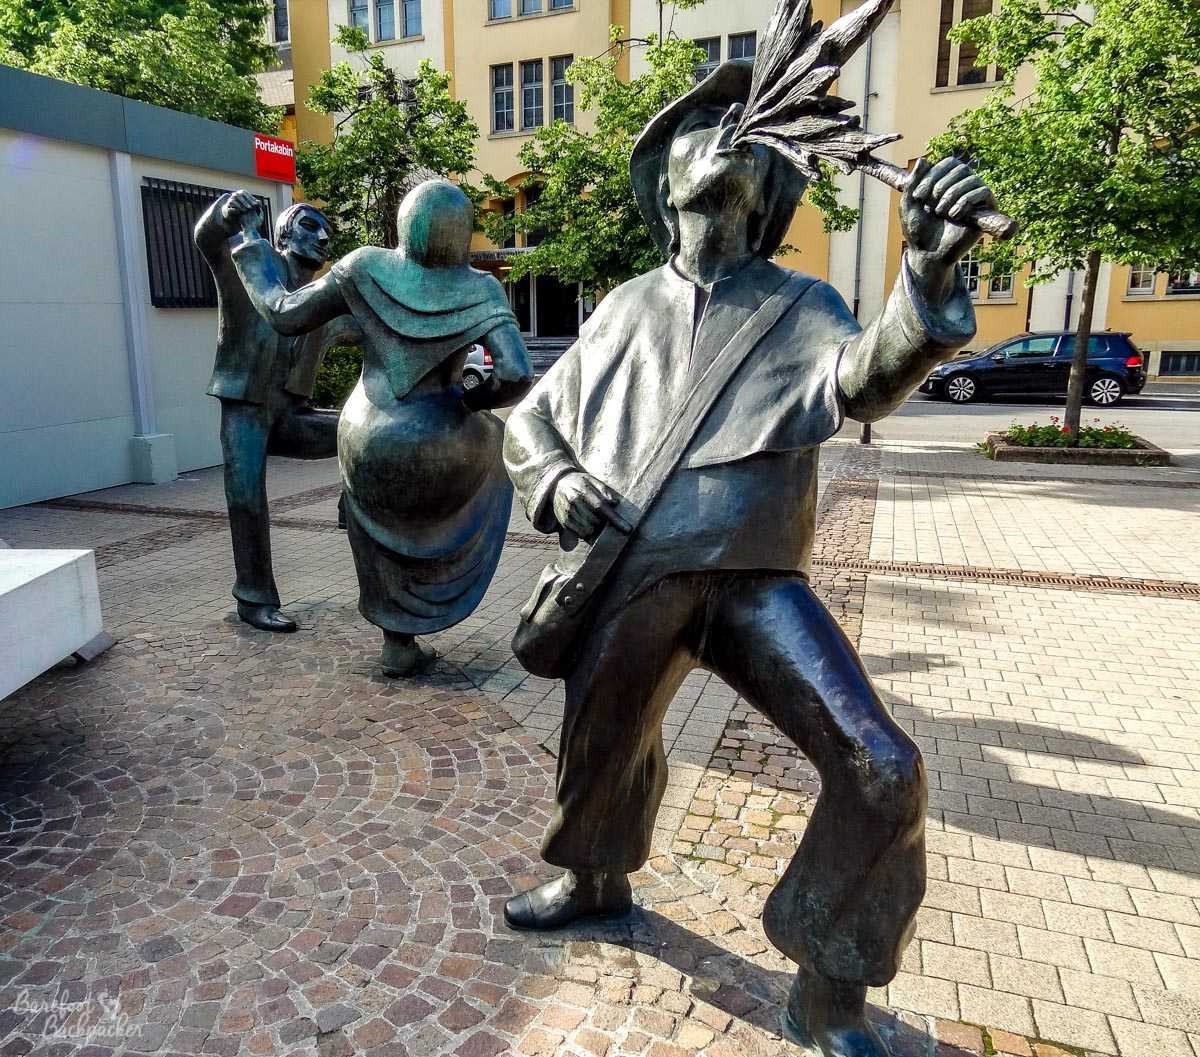 Entertainer sculptures